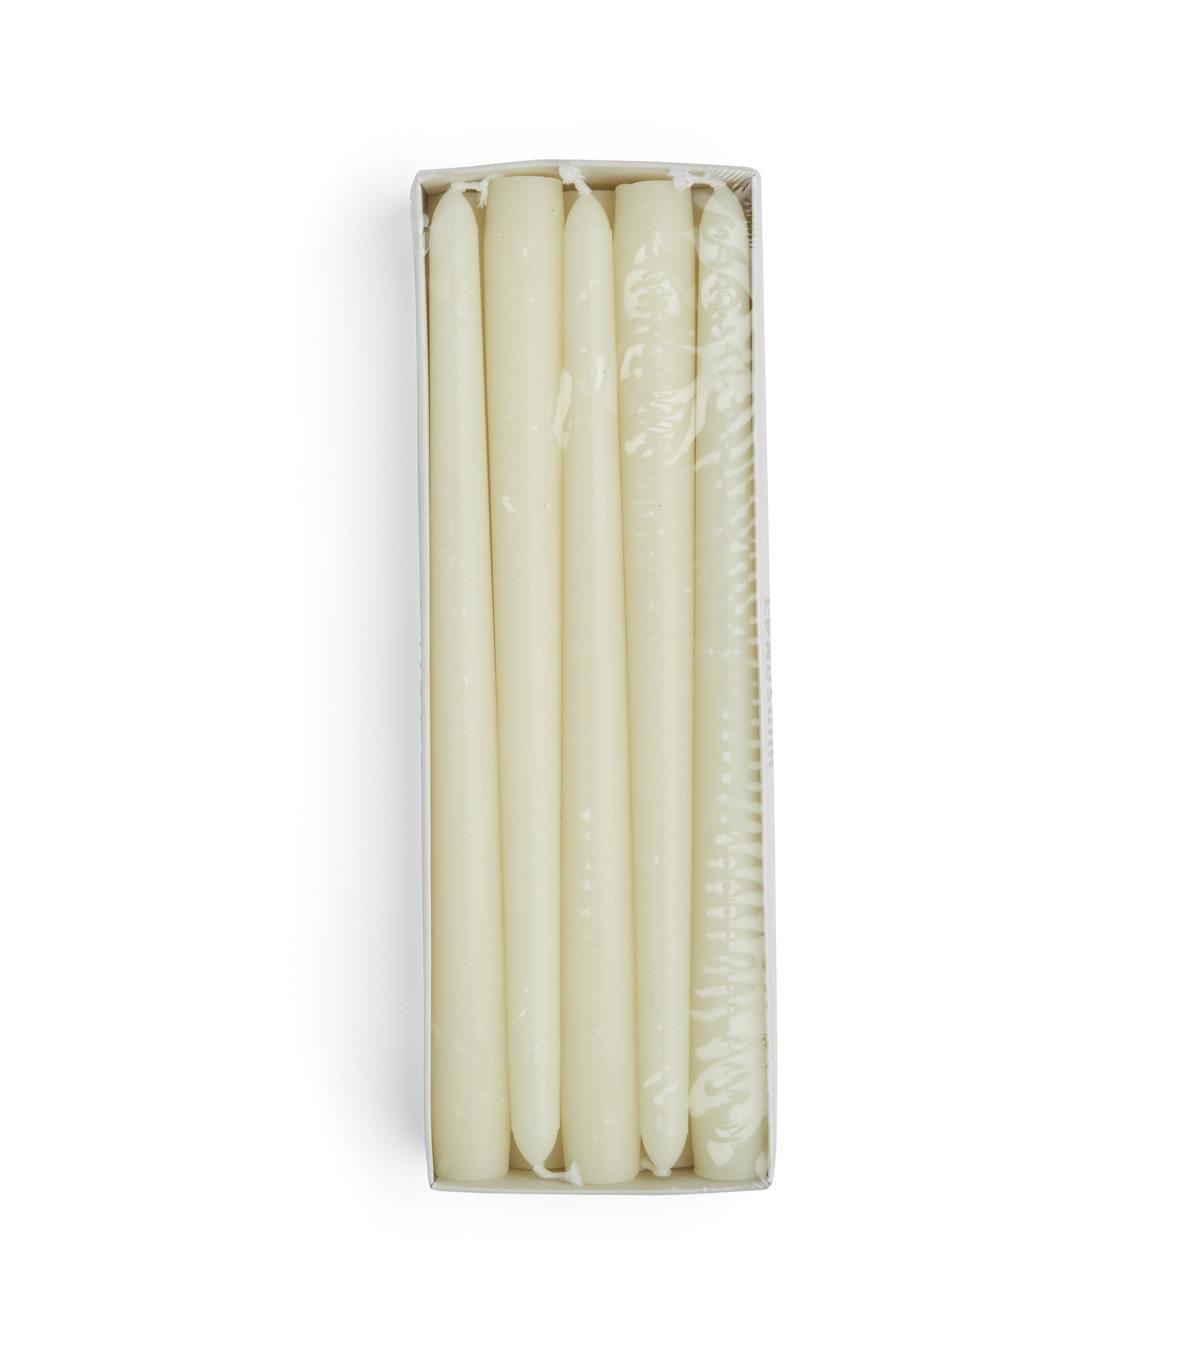 Hudson 43 Candle & Light Collection 10pk 10\u0022 Unscented Taper Candles-Ivory